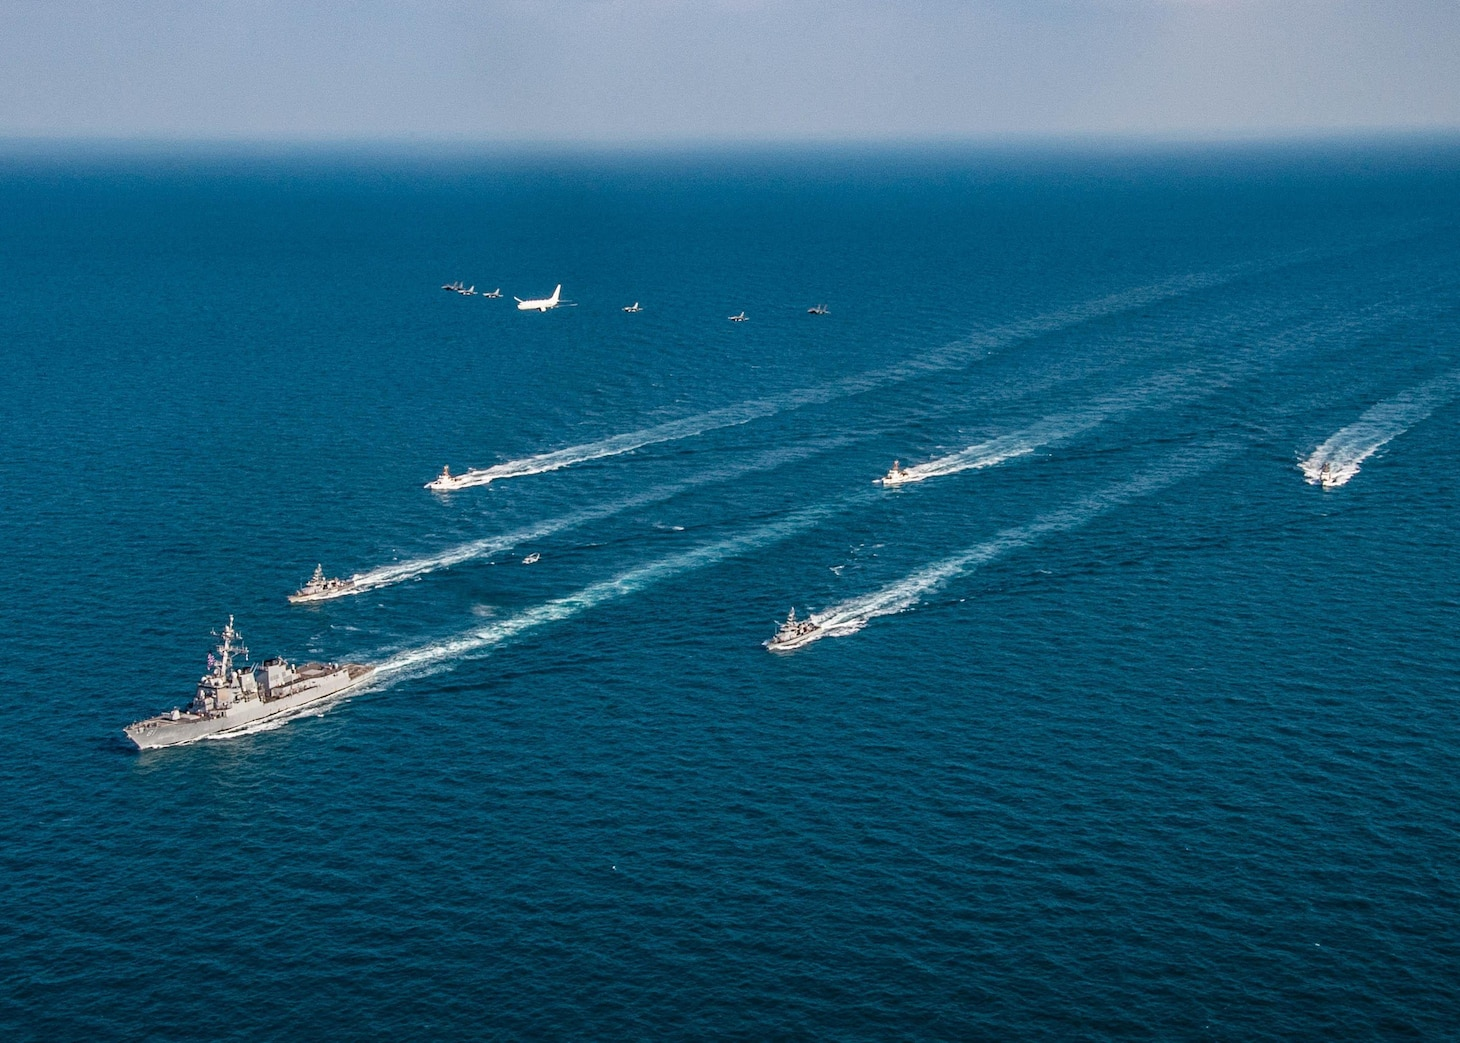 The guided-missile destroyer USS Winston S. Churchill (DDG 81), left to right, the Navy patrol coastal ships USS Firebolt (PC 10), USS Squall (PC 7), center, and the Coast Guard patrol boats USCGC Maui (WPB 1304), USCGC Monomoy (WPB 1326) and USCGC Wrangell (WPB 1322) transit the Arabian Gulf with Royal Saudi Air Force F-15SA fighter jets, U.S. Air Force F-16 Fighting Falcon fighter jets, a U.S. Navy MH-60R Sea Hawk helicopter and a U.S. Navy P-8A Poseidon aircraft during the joint and combined air operations in support of maritime surface warfare (AOMSW) exercise in the Arabian Gulf, Dec. 17. Combined integration operations between joint U.S. forces are regularly held to maintain interoperability and the capability to counter threats posed in the maritime domain, ensuring freedom of navigation and free flow of commerce throughout the region's heavily trafficked waterways.